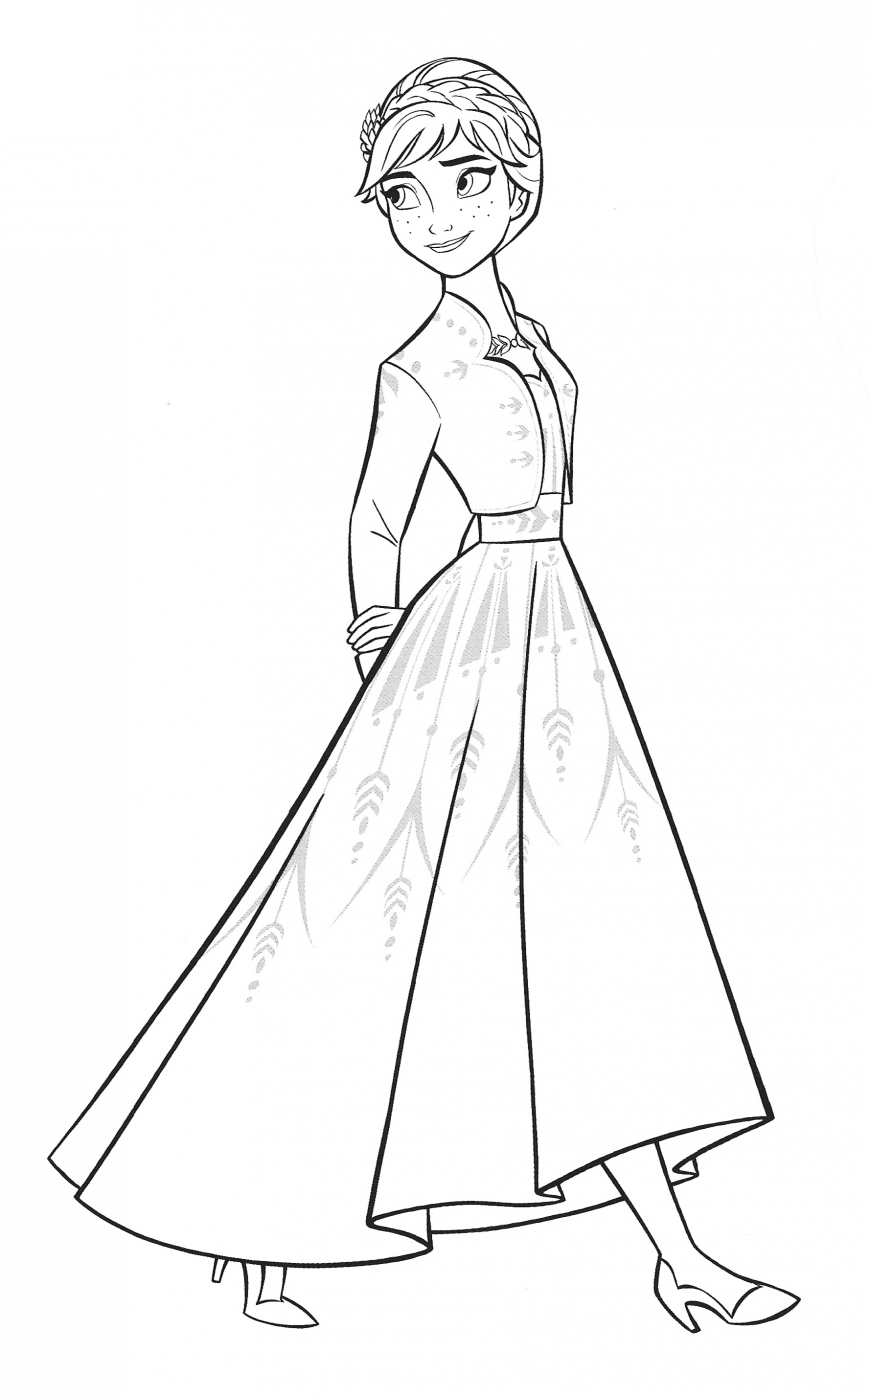 A new coat for anna coloring pages ~ New Frozen 2 coloring pages with Anna - YouLoveIt.com